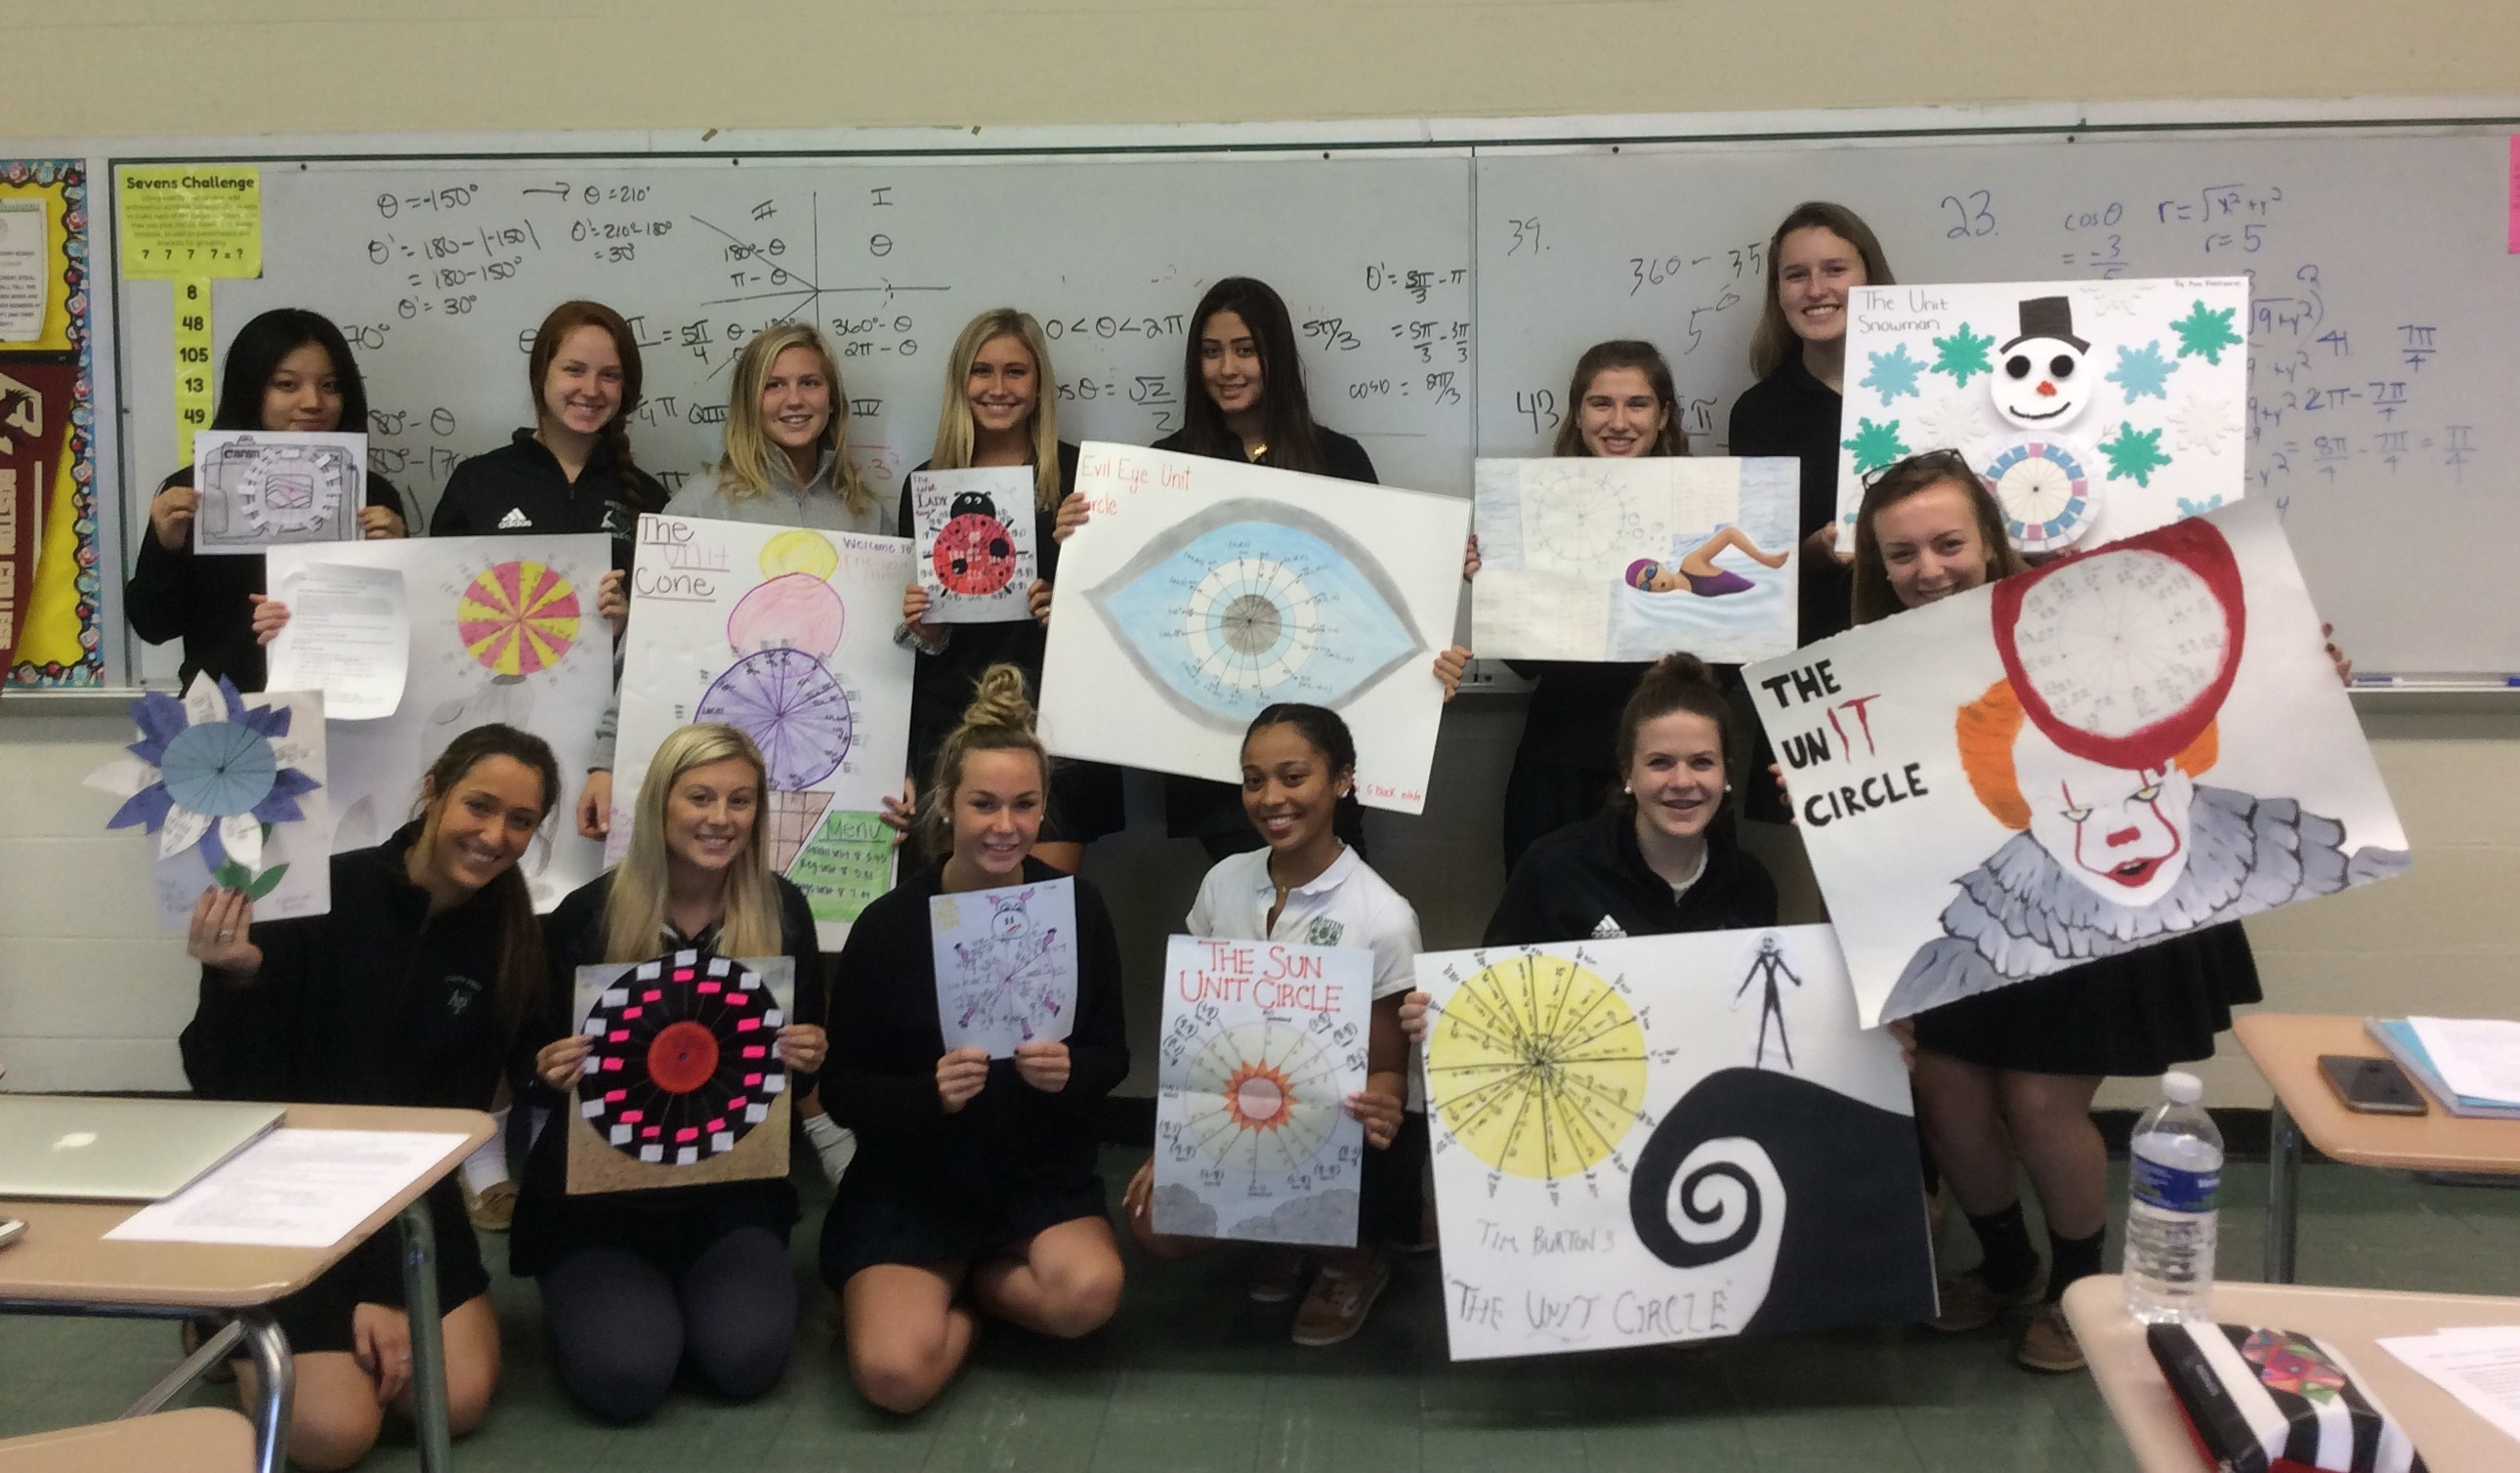 Austin Prep students with unit circle projects